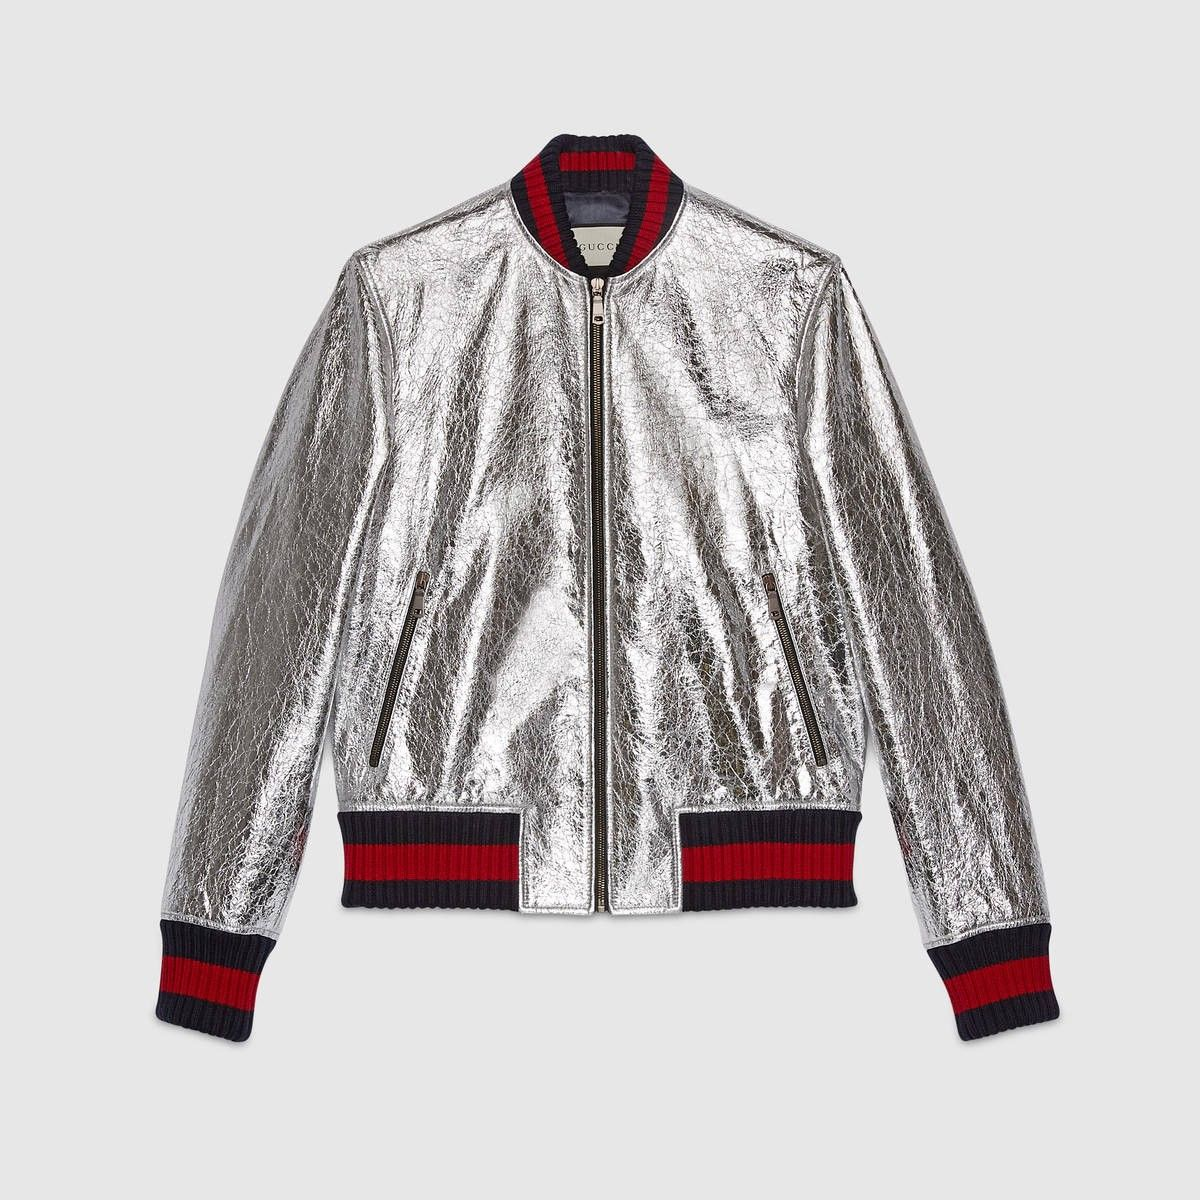 915e55bc97a GUCCI Men S Crackle Leather Bomber Jacket - Silver Leather.  gucci  cloth   all